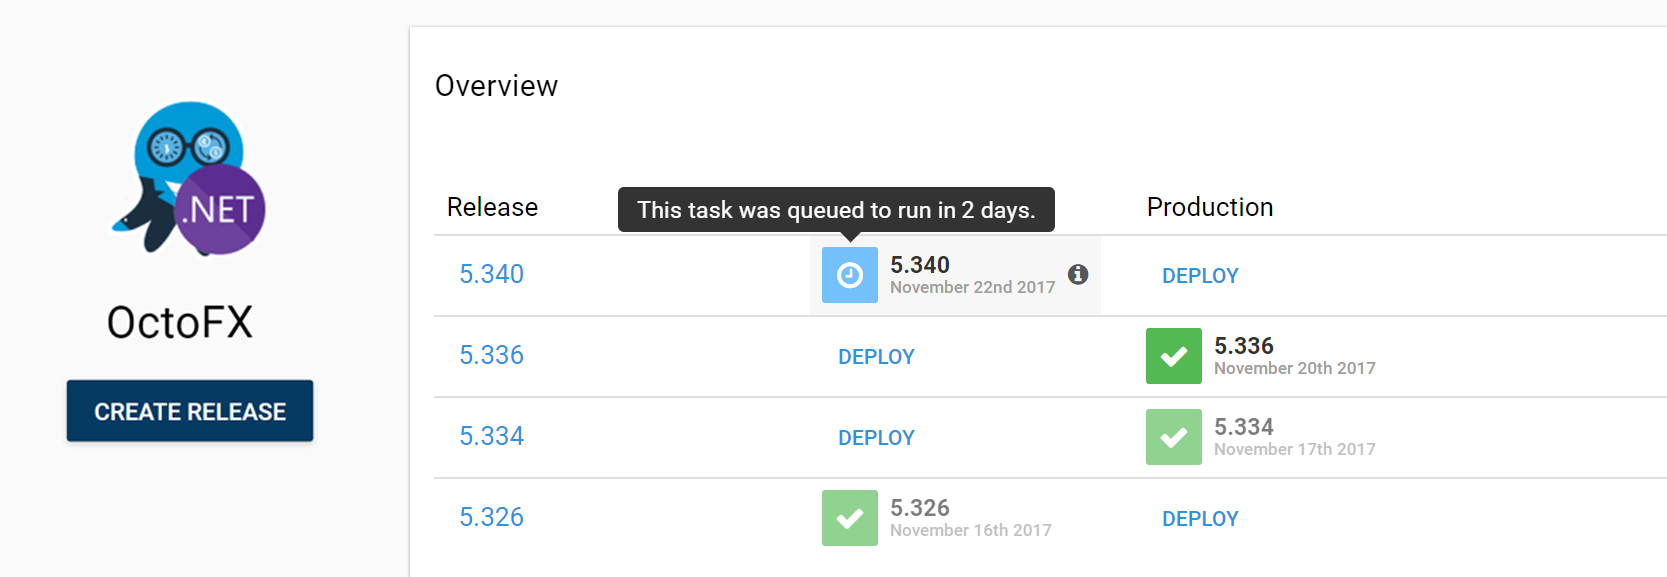 Octopus Deploy Demo - Intuitive, easy to use dashboard